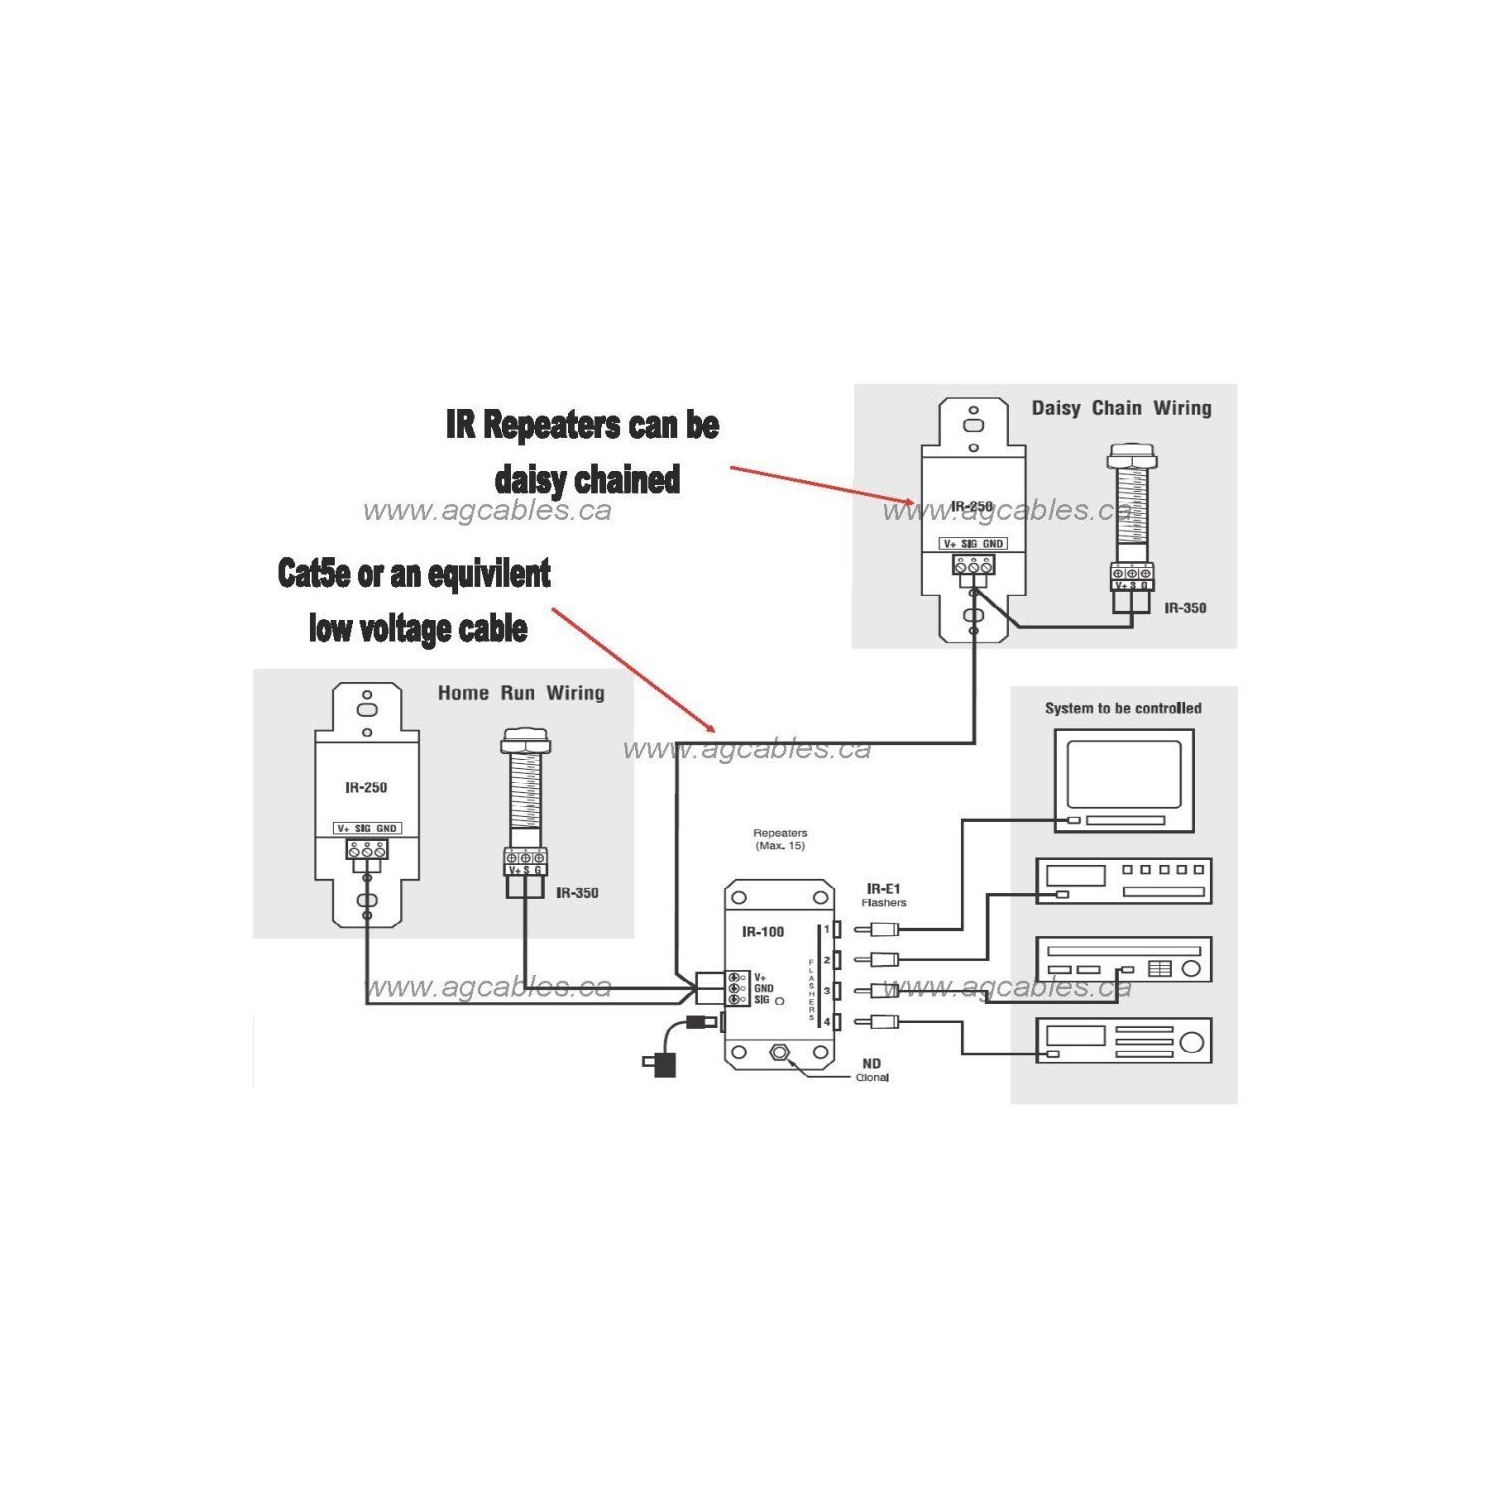 11535350 remote control extension infrared signalling repeater kit bell bell fibe wiring diagram at edmiracle.co